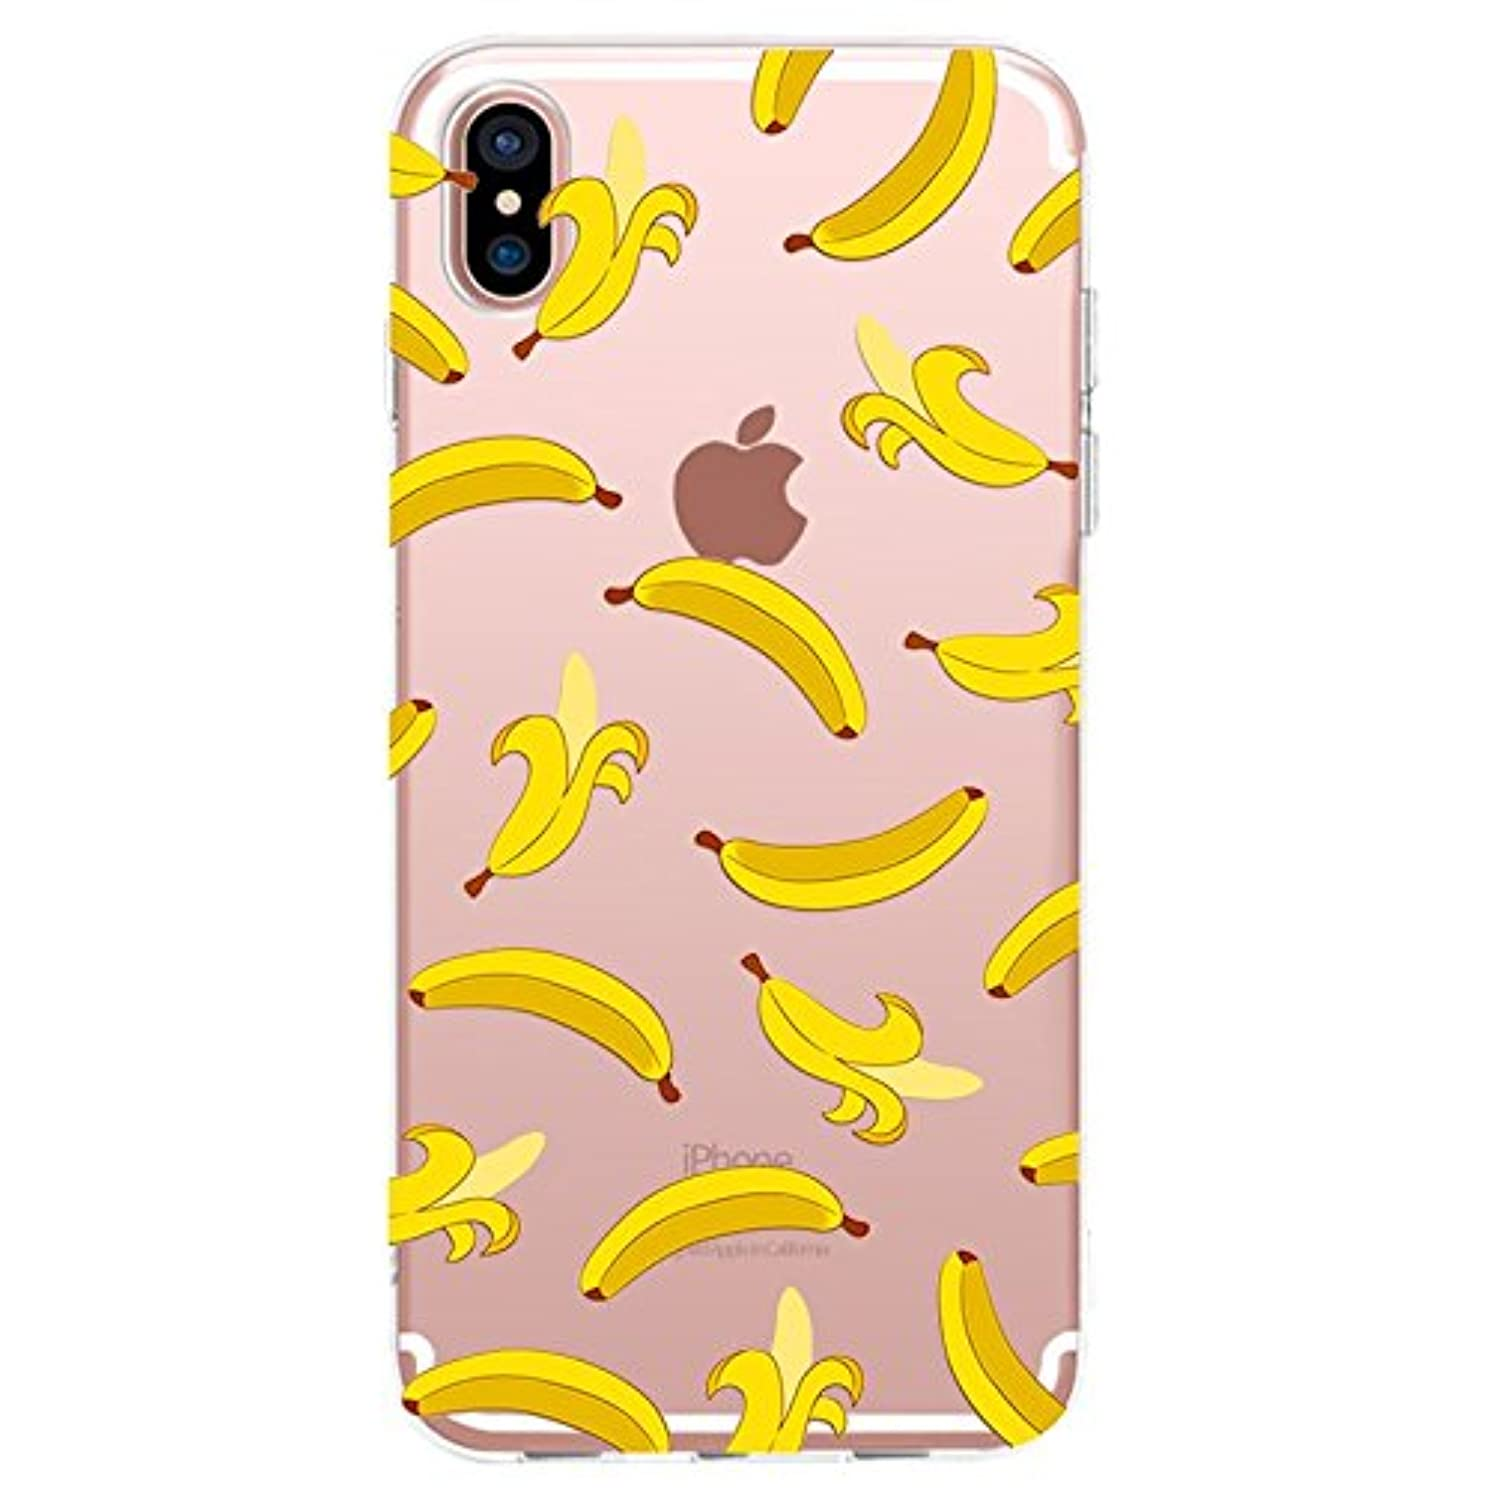 iPhone XR Case,Blingy's New Fruit Style Transparent Clear Soft TPU Protective Rubber Case Compatible for iPhone XR (Banana)